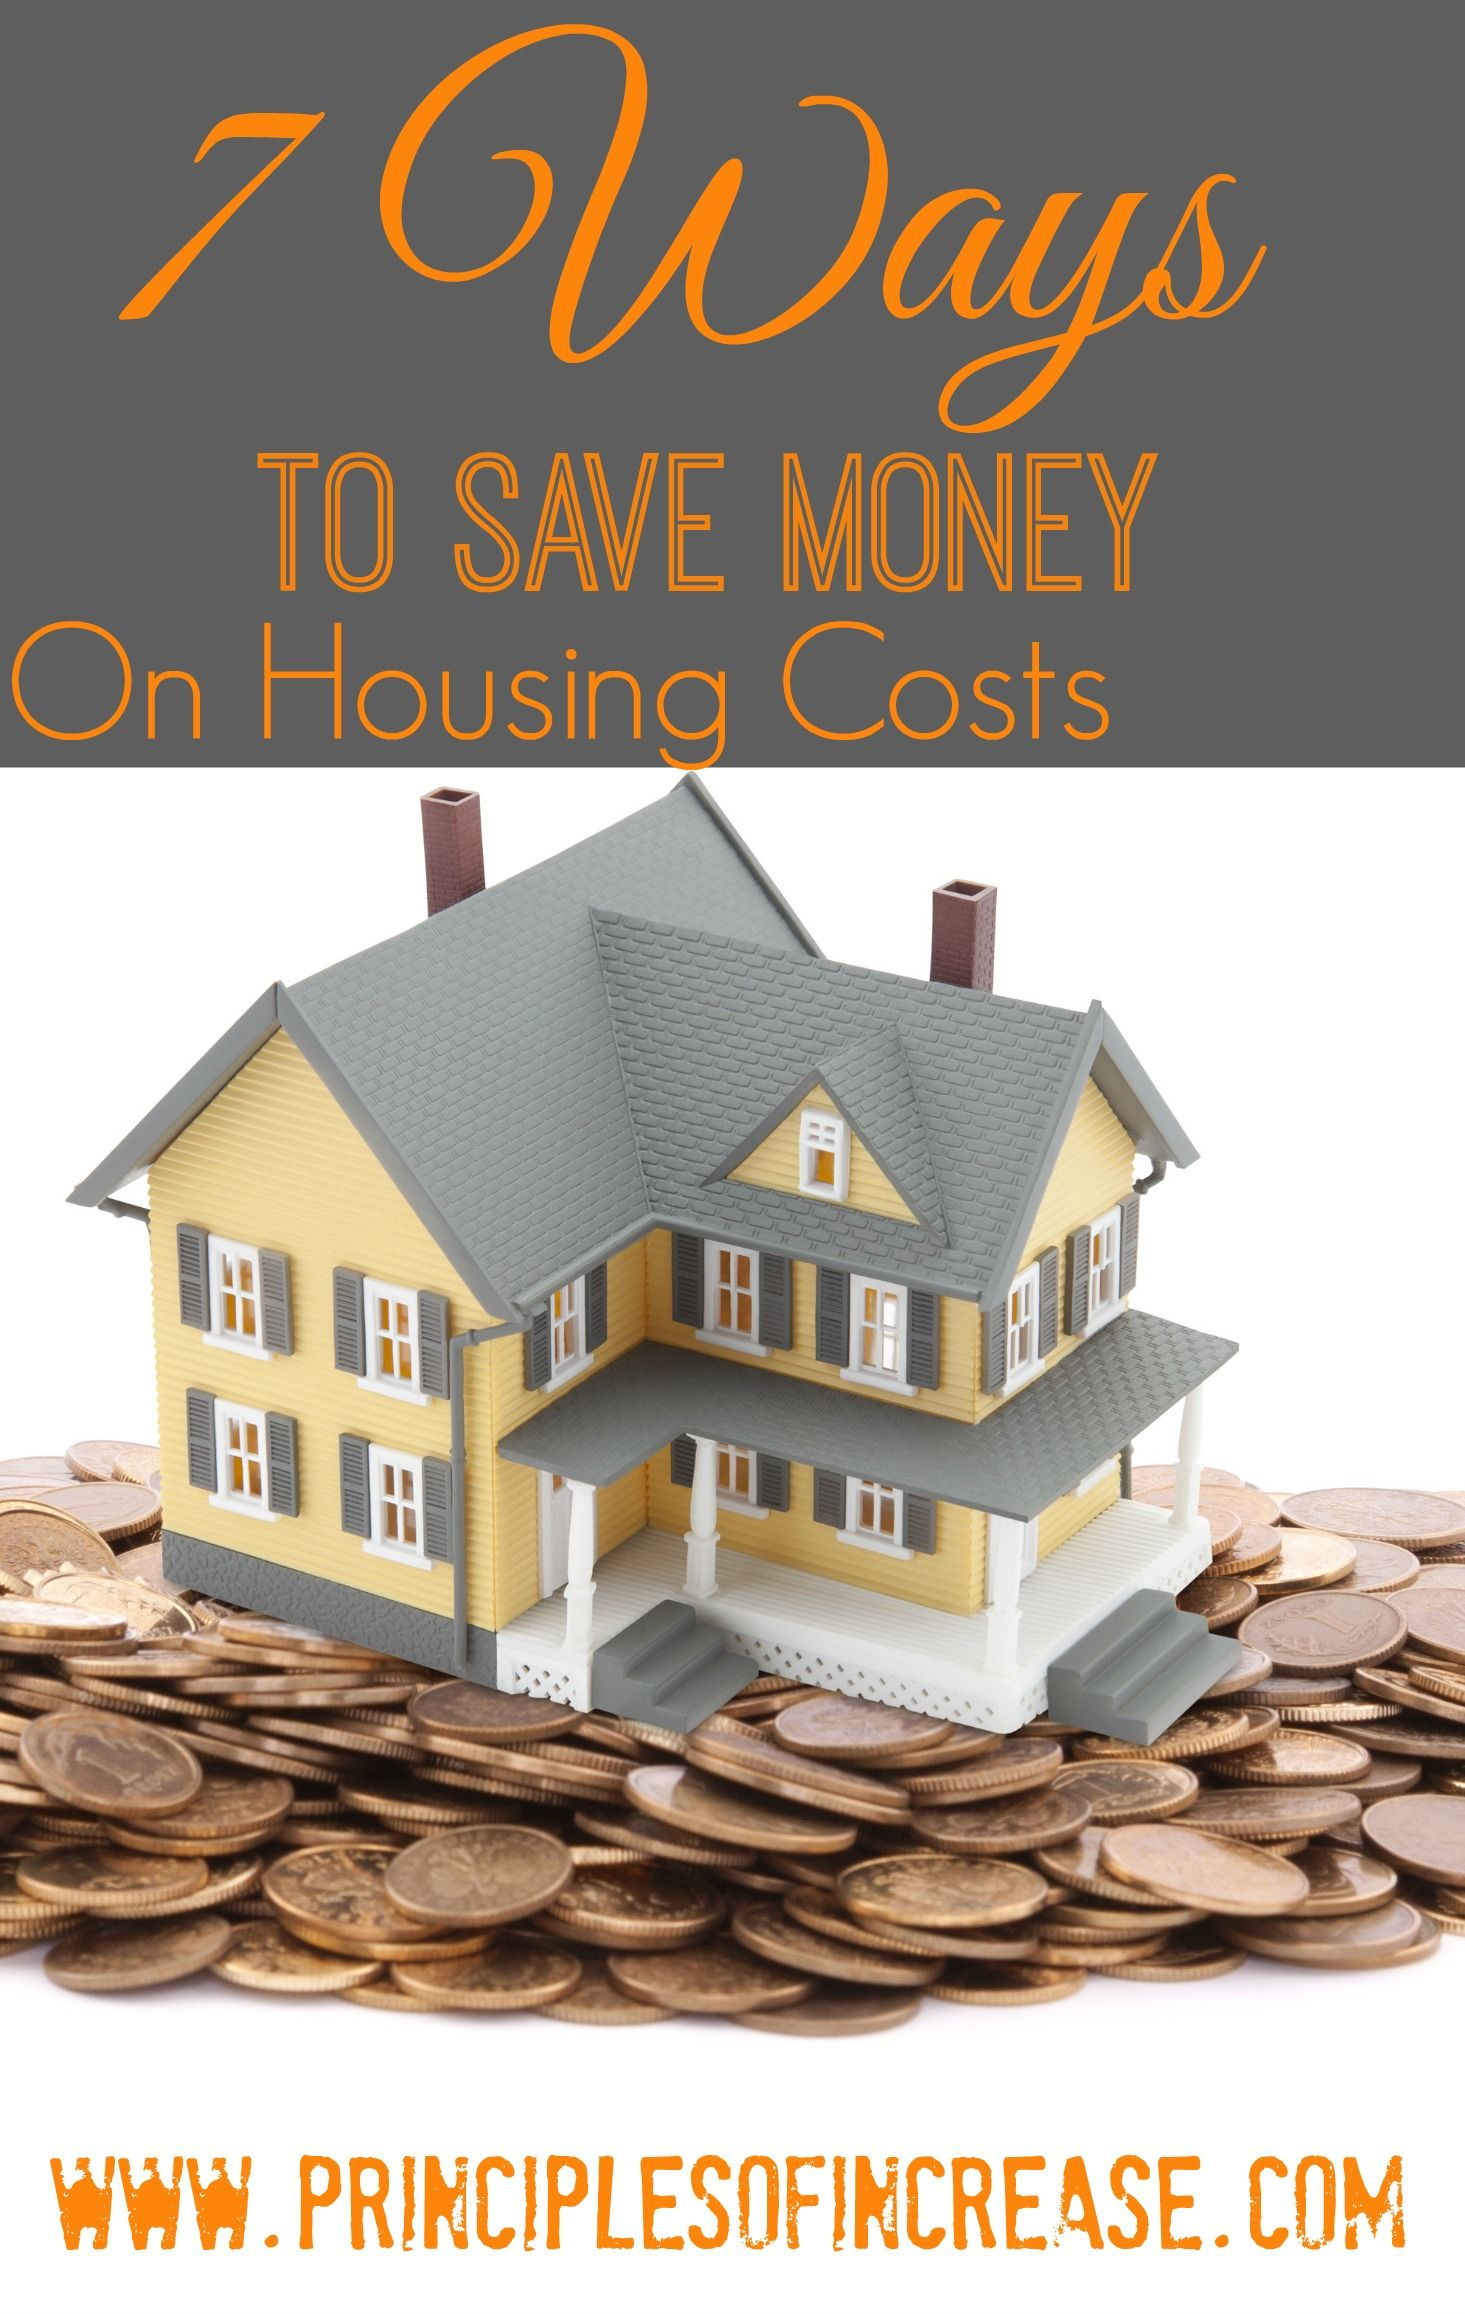 How to save money for housing 70